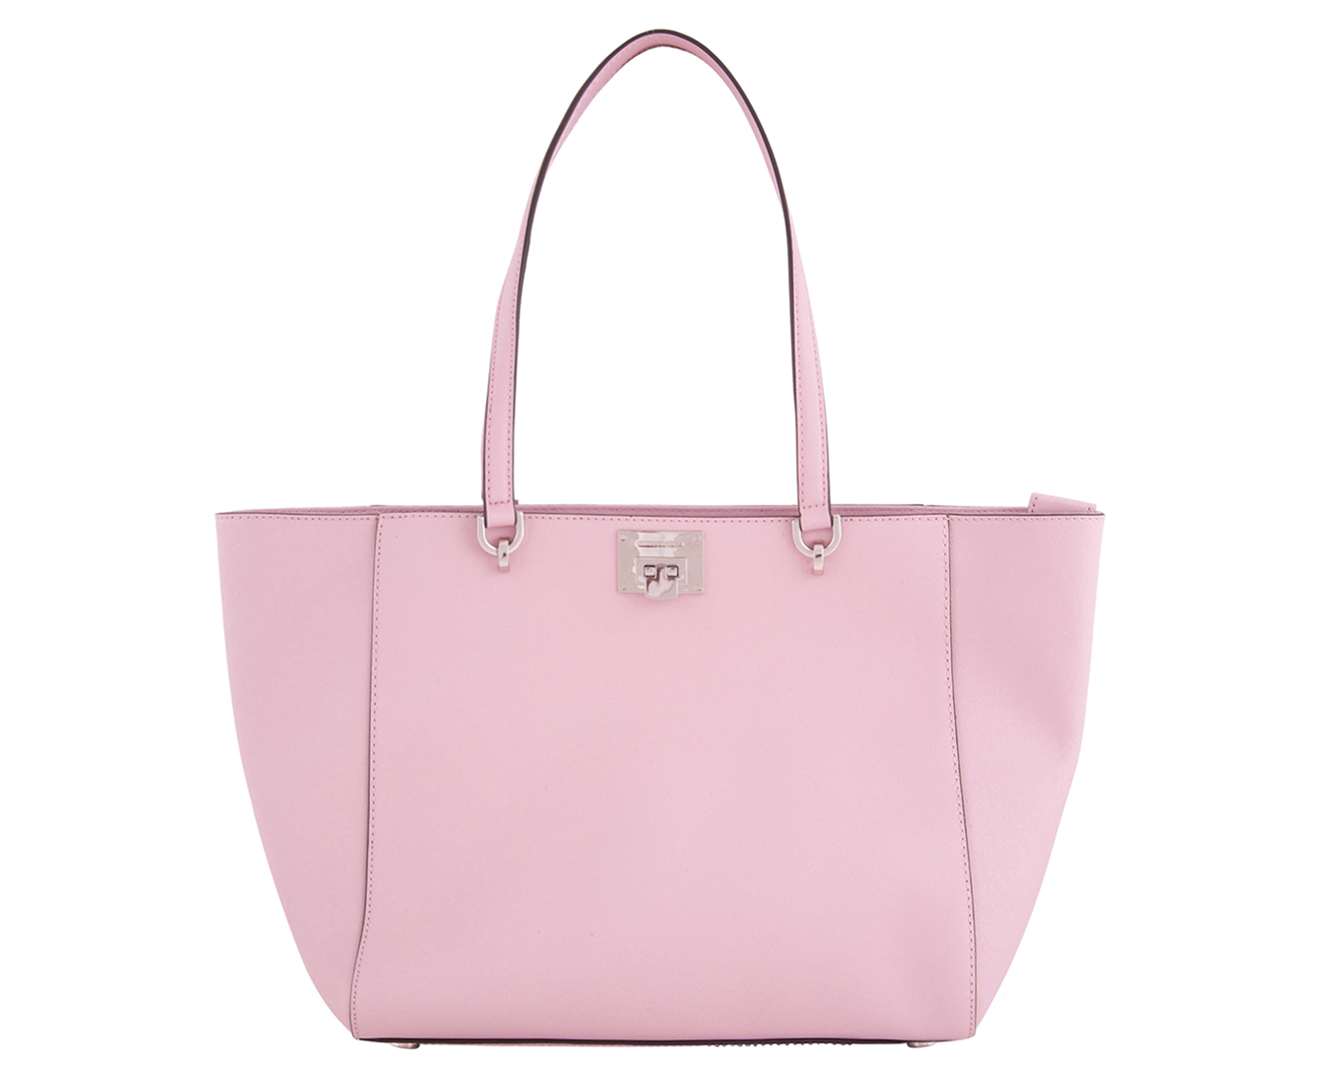 Details about Michael Kors Tina Tote Bag Blossom